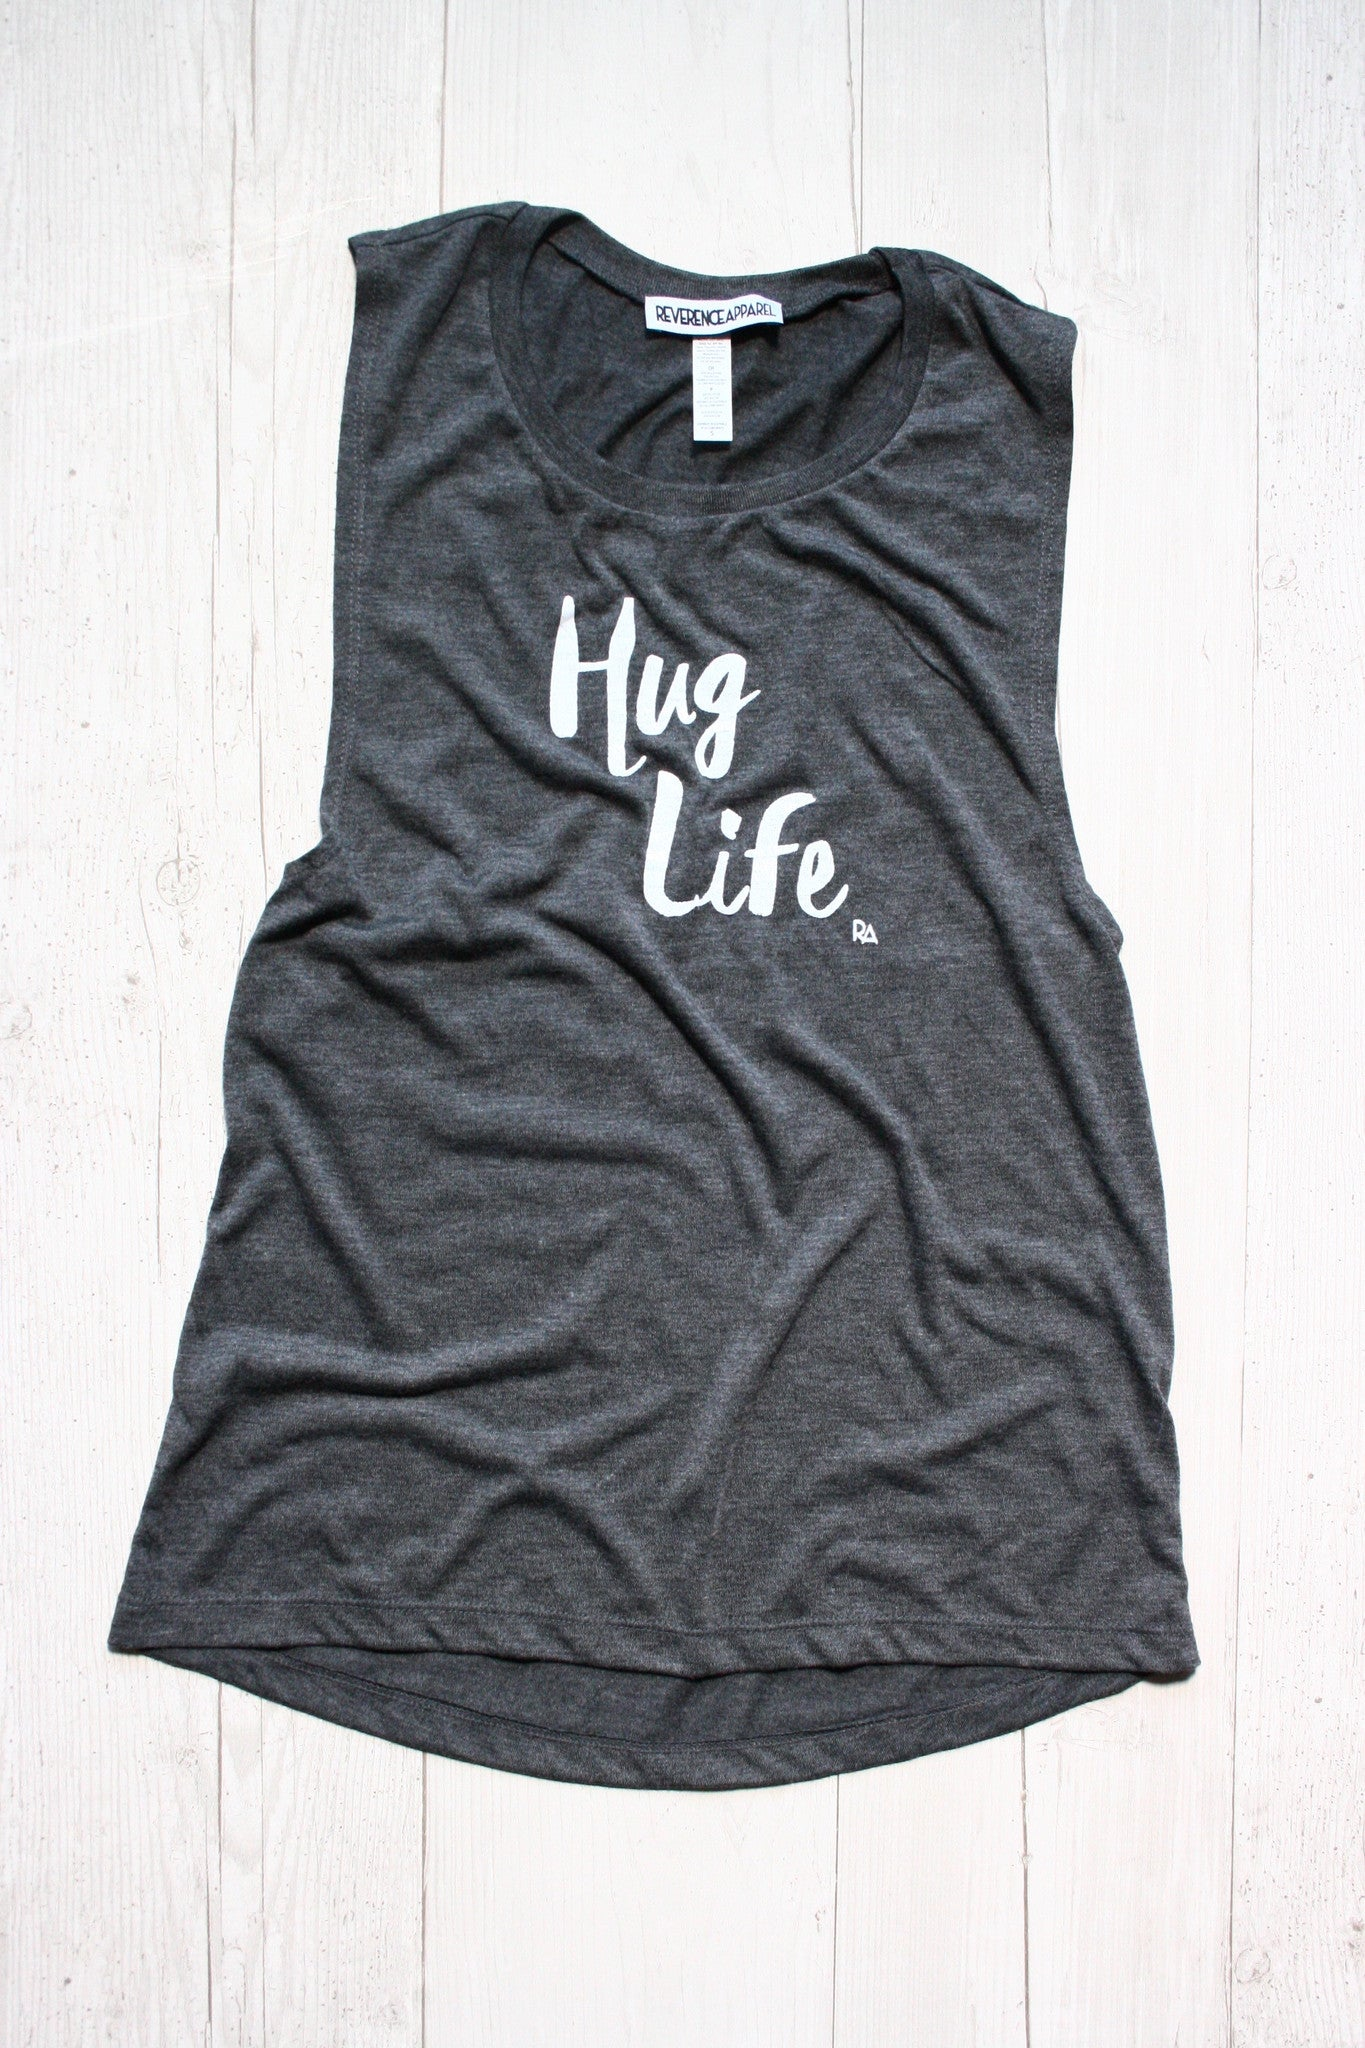 HUG LIFE DYLAN MUSCLE GRAPHIC TANK, , Tank, Reverence Apparel, Reverence Apparel   - 1